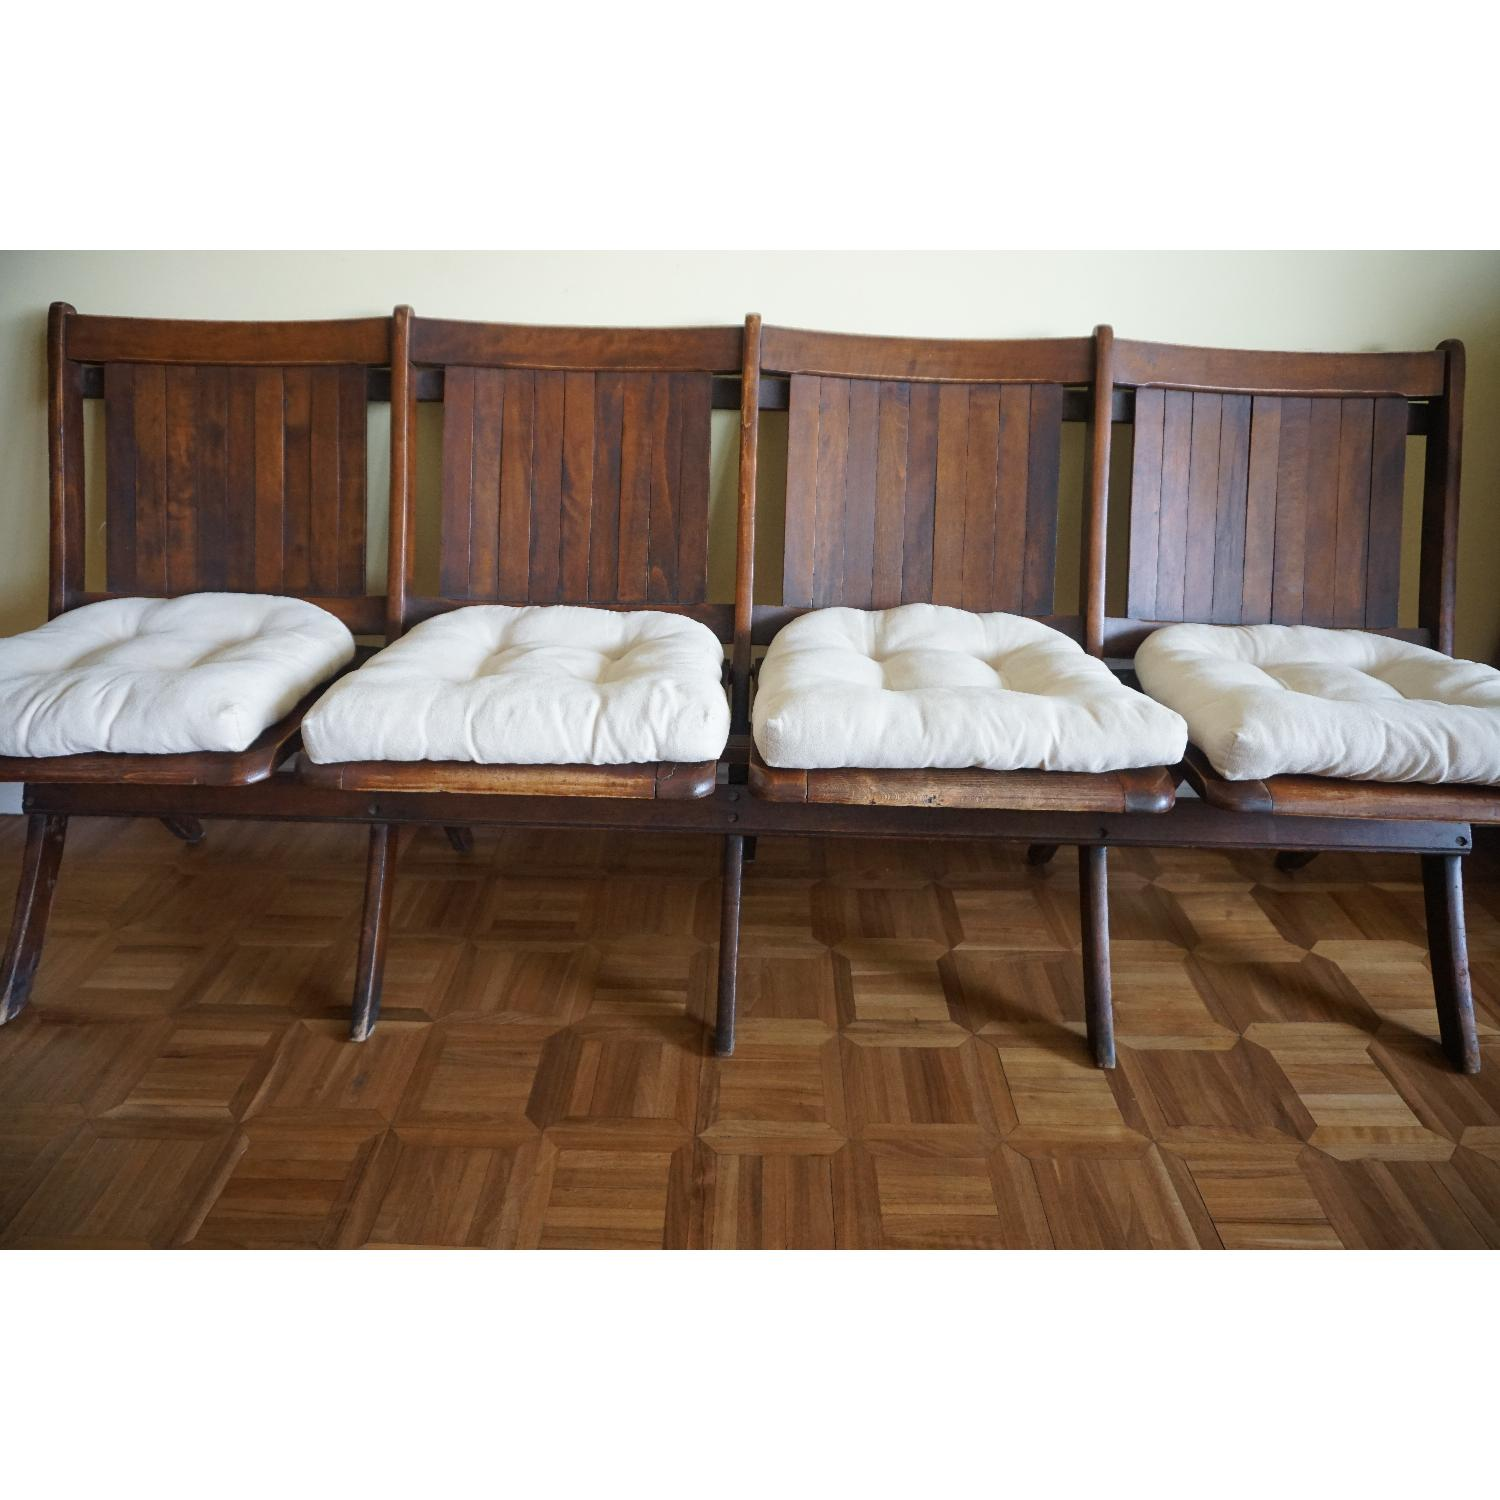 Vintage Harlem Movie Theater Wooden Bench Seats - image-2